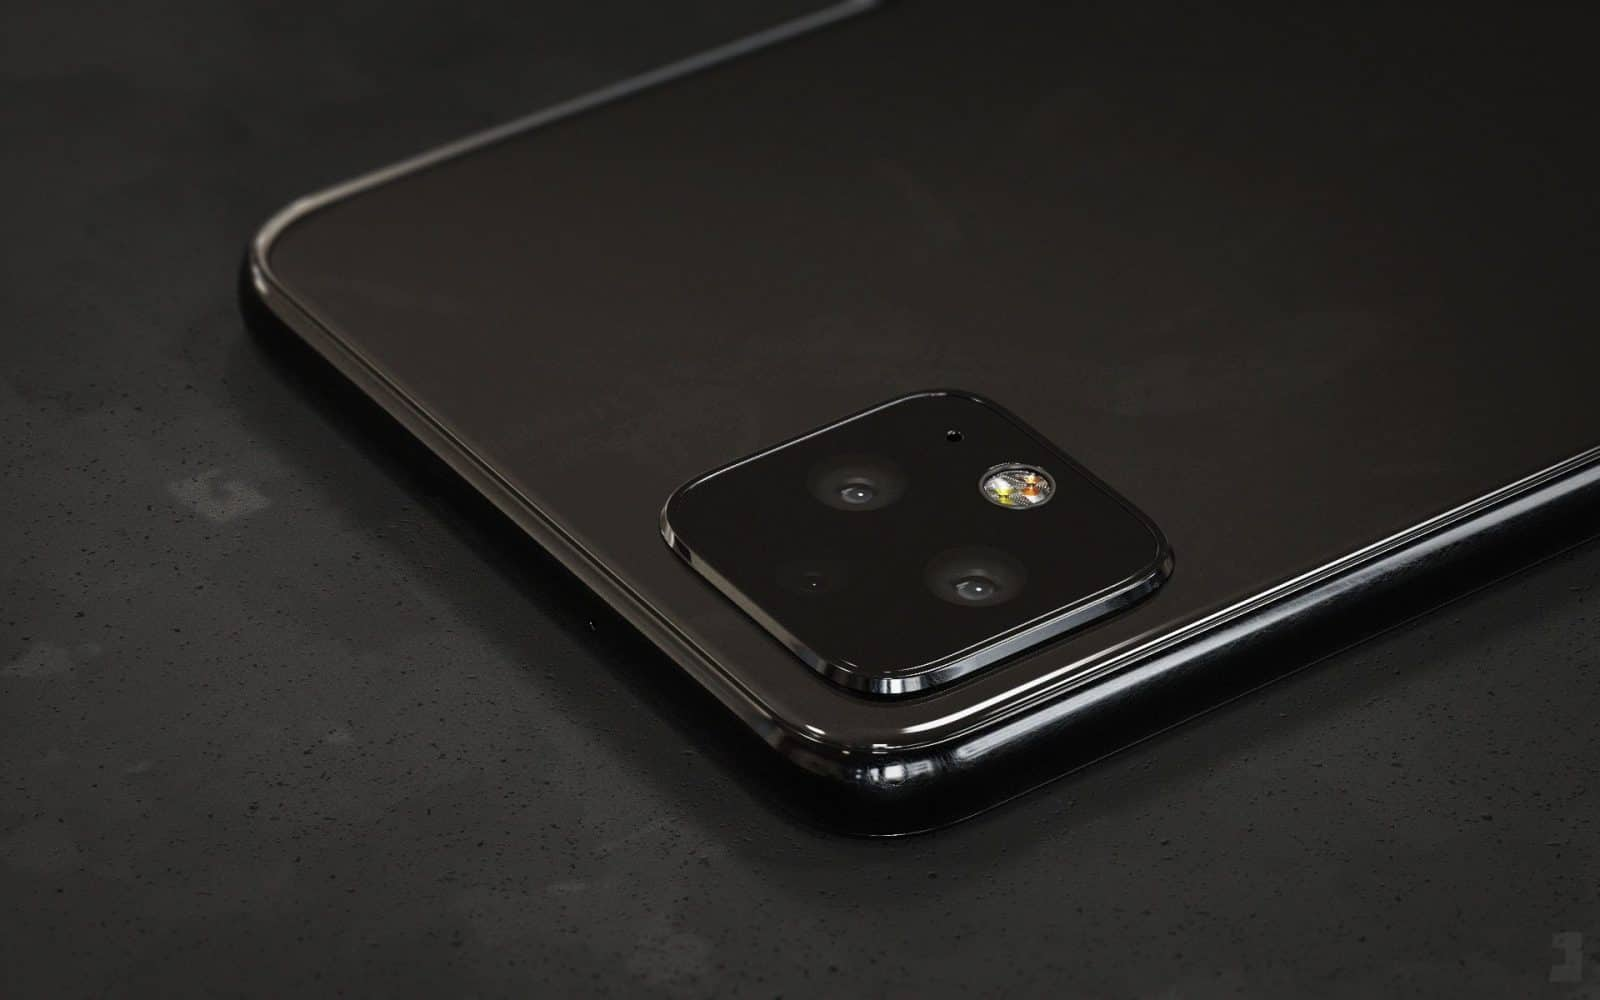 Google Pixel 4 might have a telephoto lens reveals Google Camera code